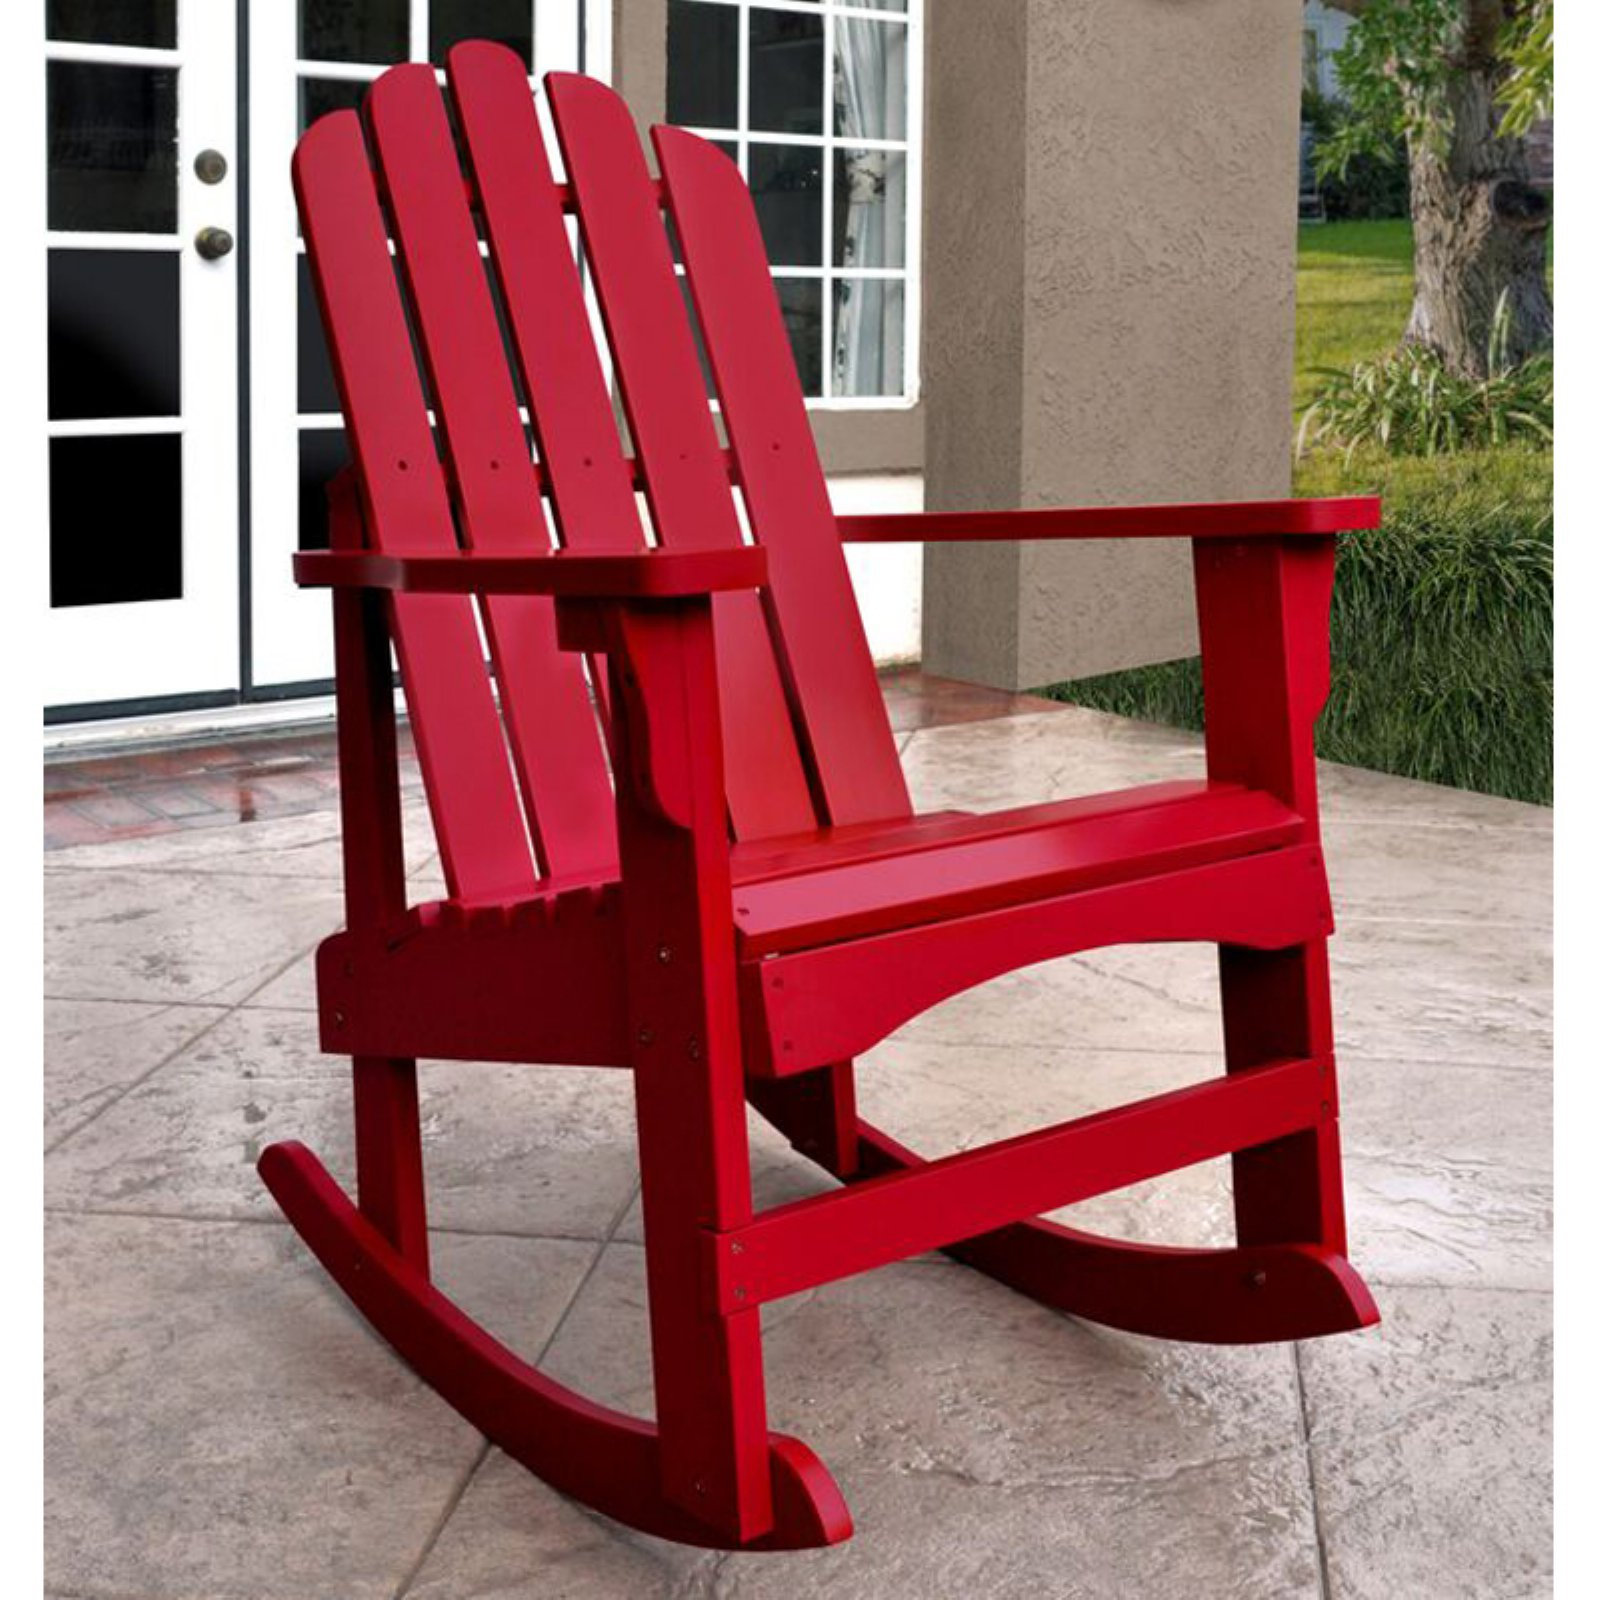 Shine Company Marina Porch Rocker - Chili Pepper